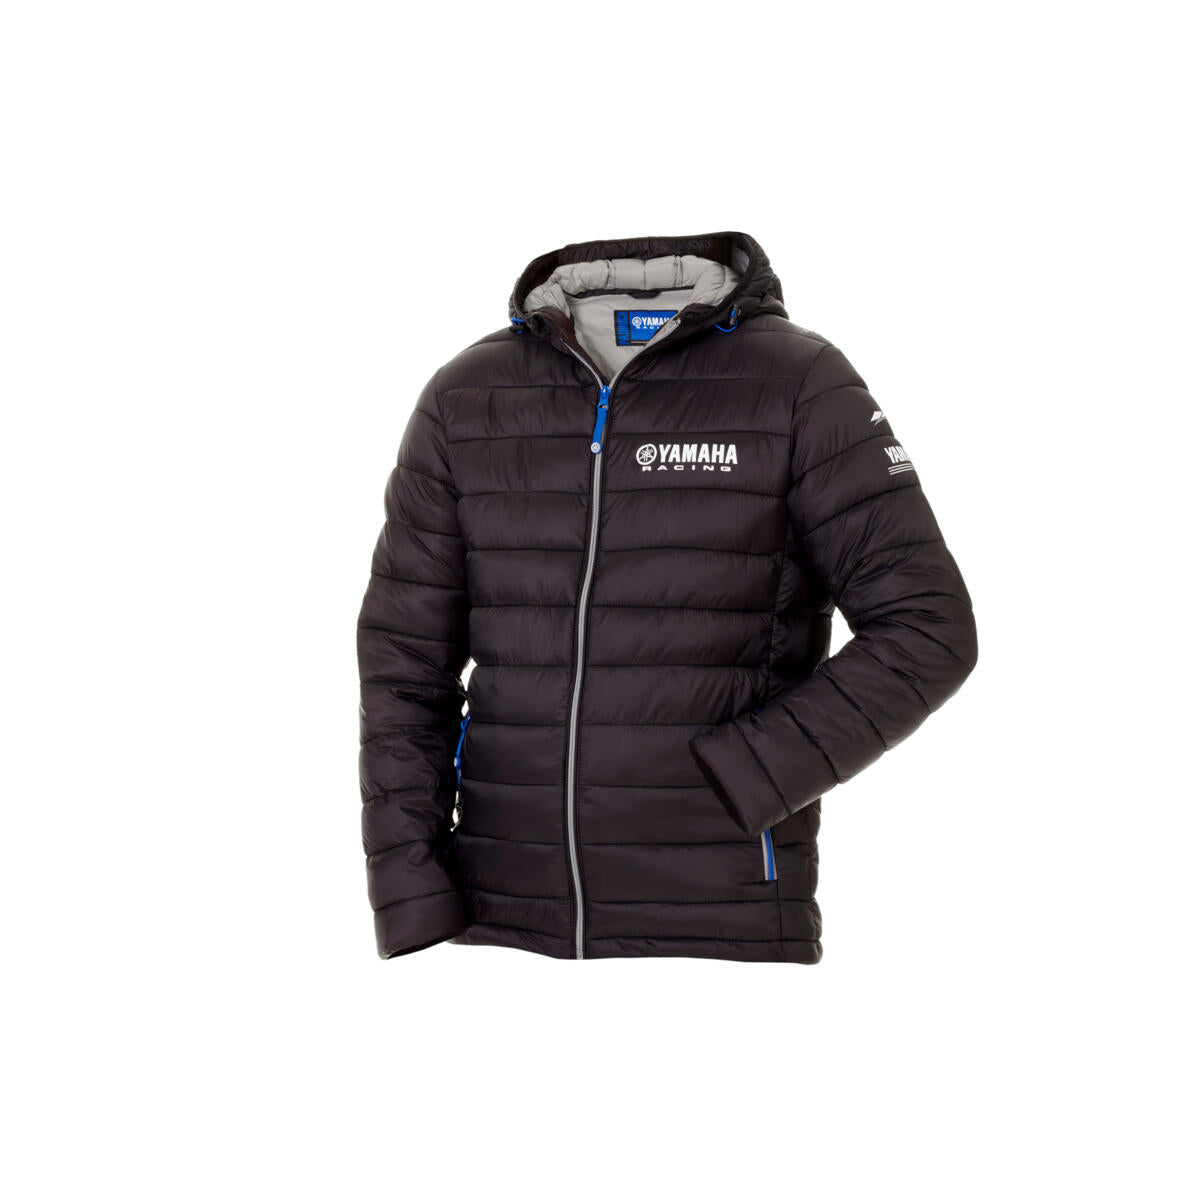 Paddock Blue Men's Padded Jacket - Black / Blue